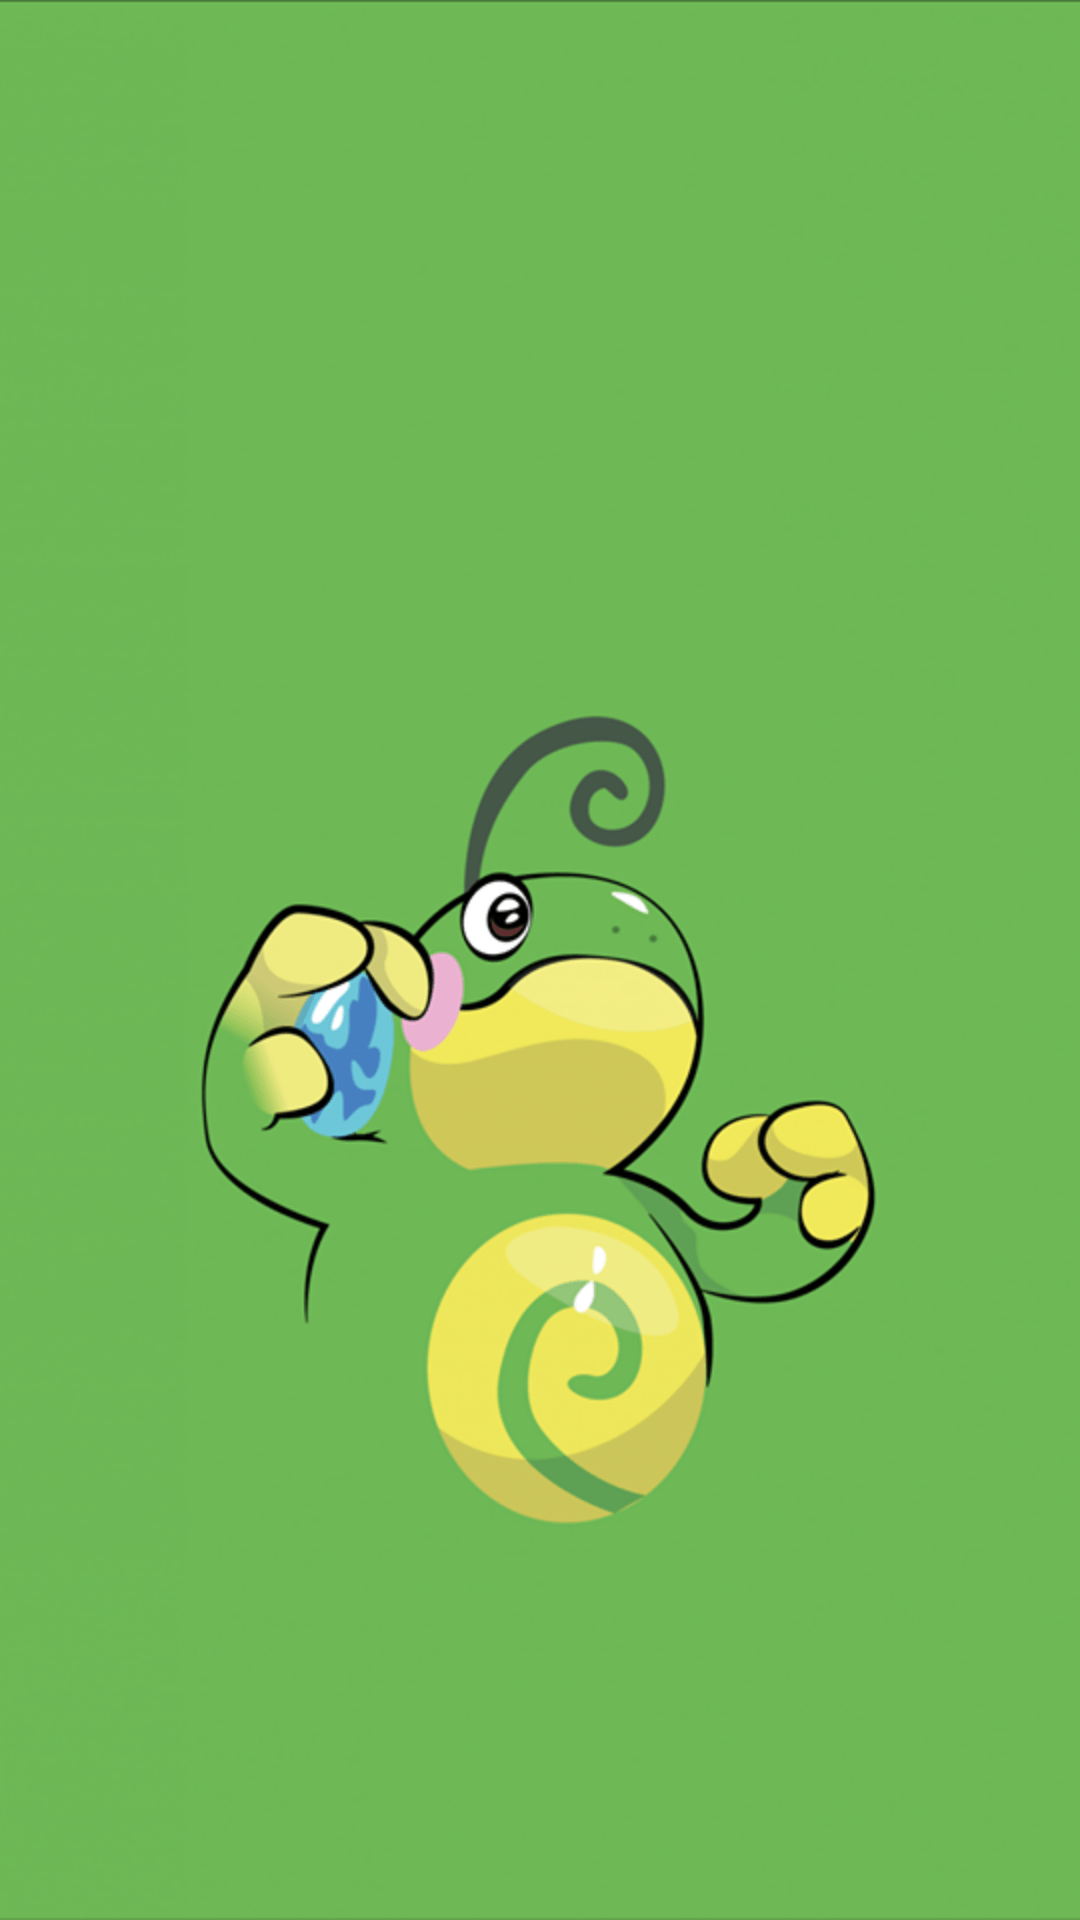 Download Politoed 1080 x 1920 Wallpapers